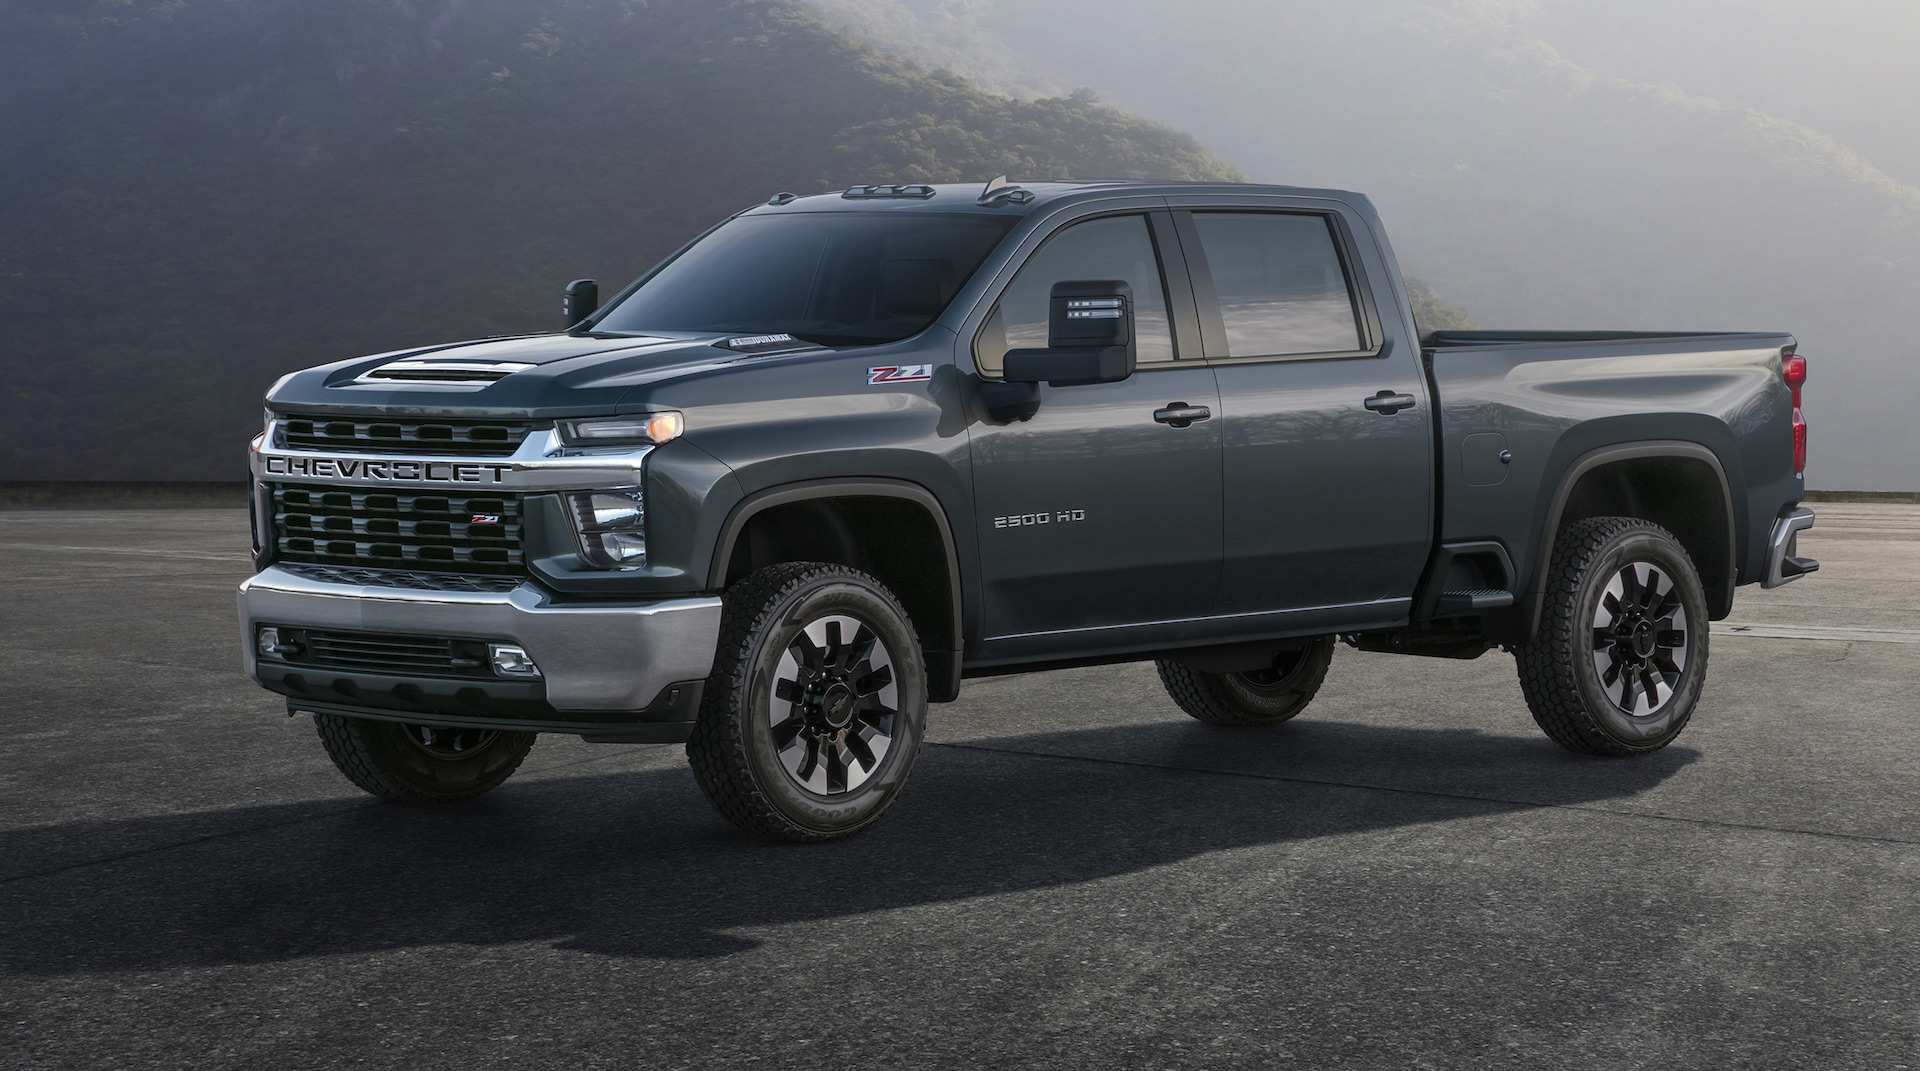 41 Best 2020 GMC 2500 Unveil Images